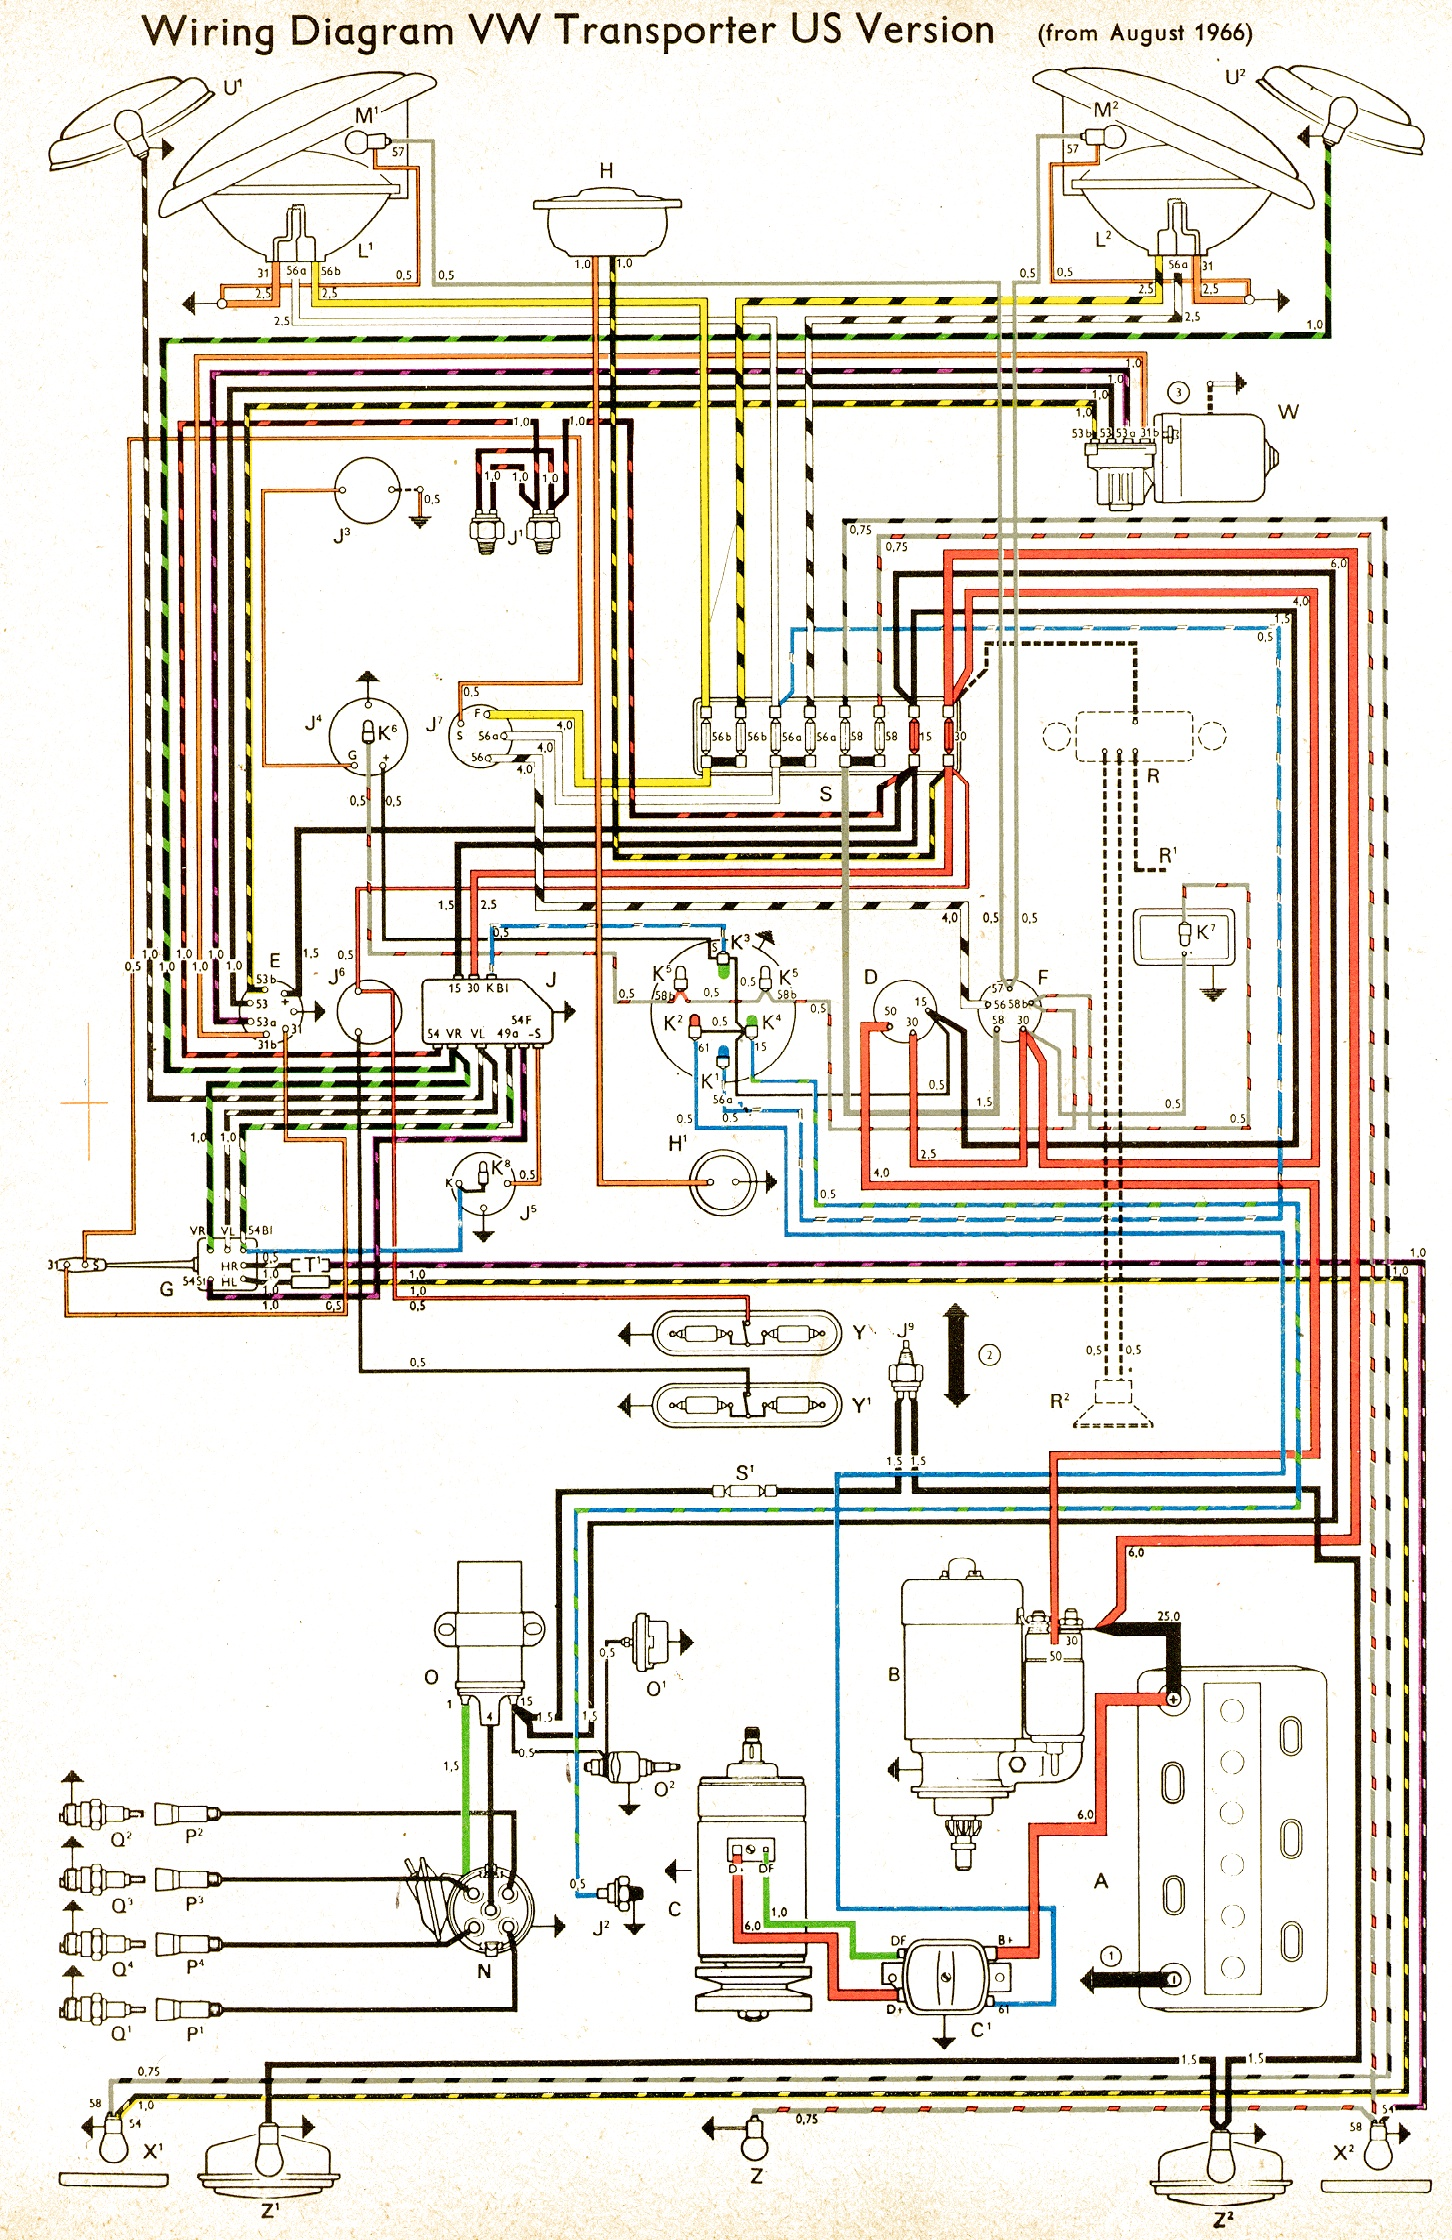 1966 Mercedes Wiring Diagram Pictures Harnesses 67 Vw Harness Schematics Rh Mychampagnedaze Com 1994 Ford Thunderbird Schematic